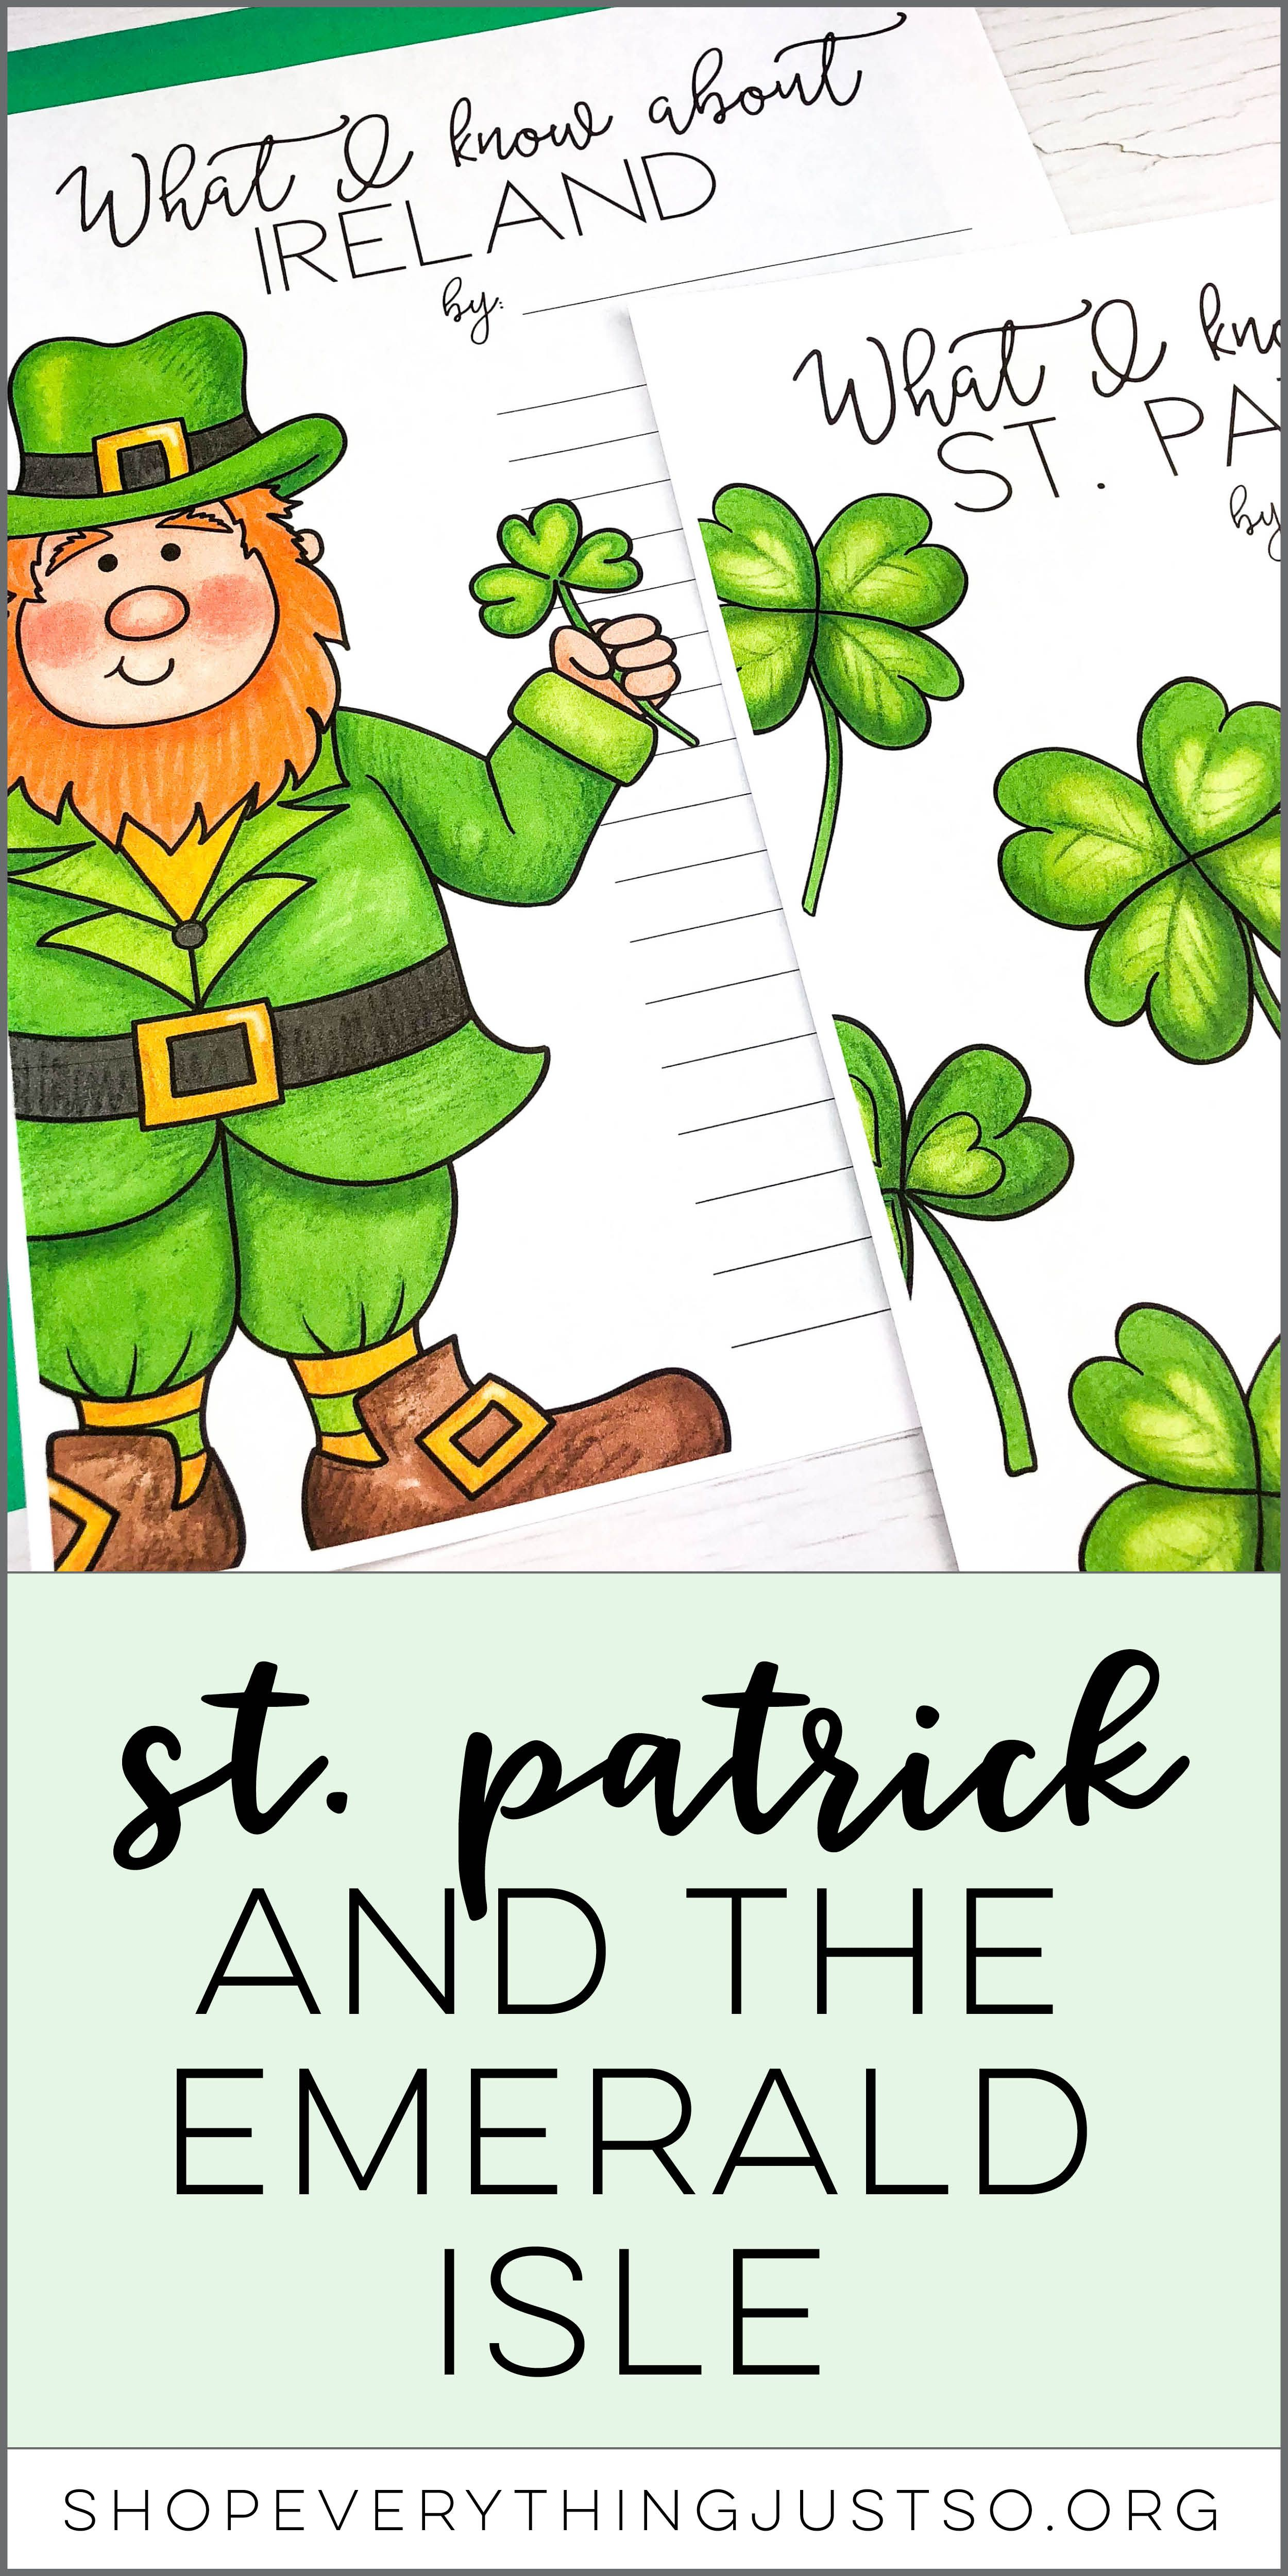 St Patrick And The Emerald Isle